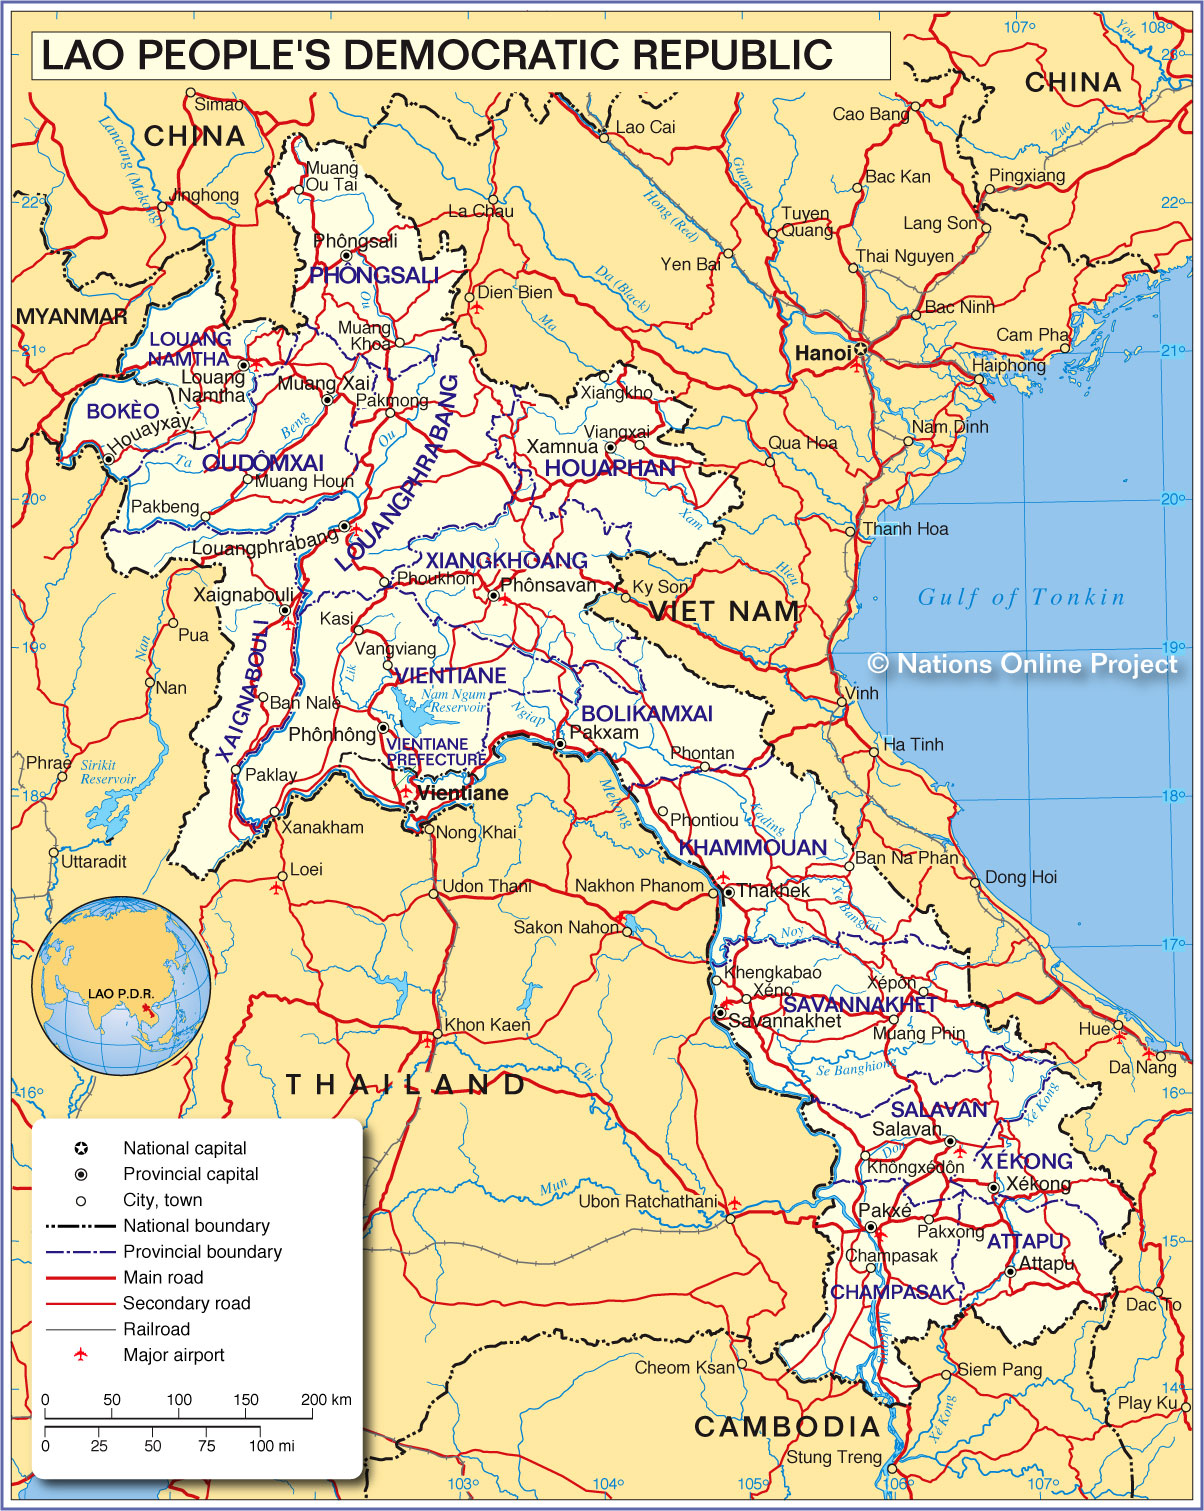 Map Of Laos Political Map of Laos   Nations Online Project Map Of Laos